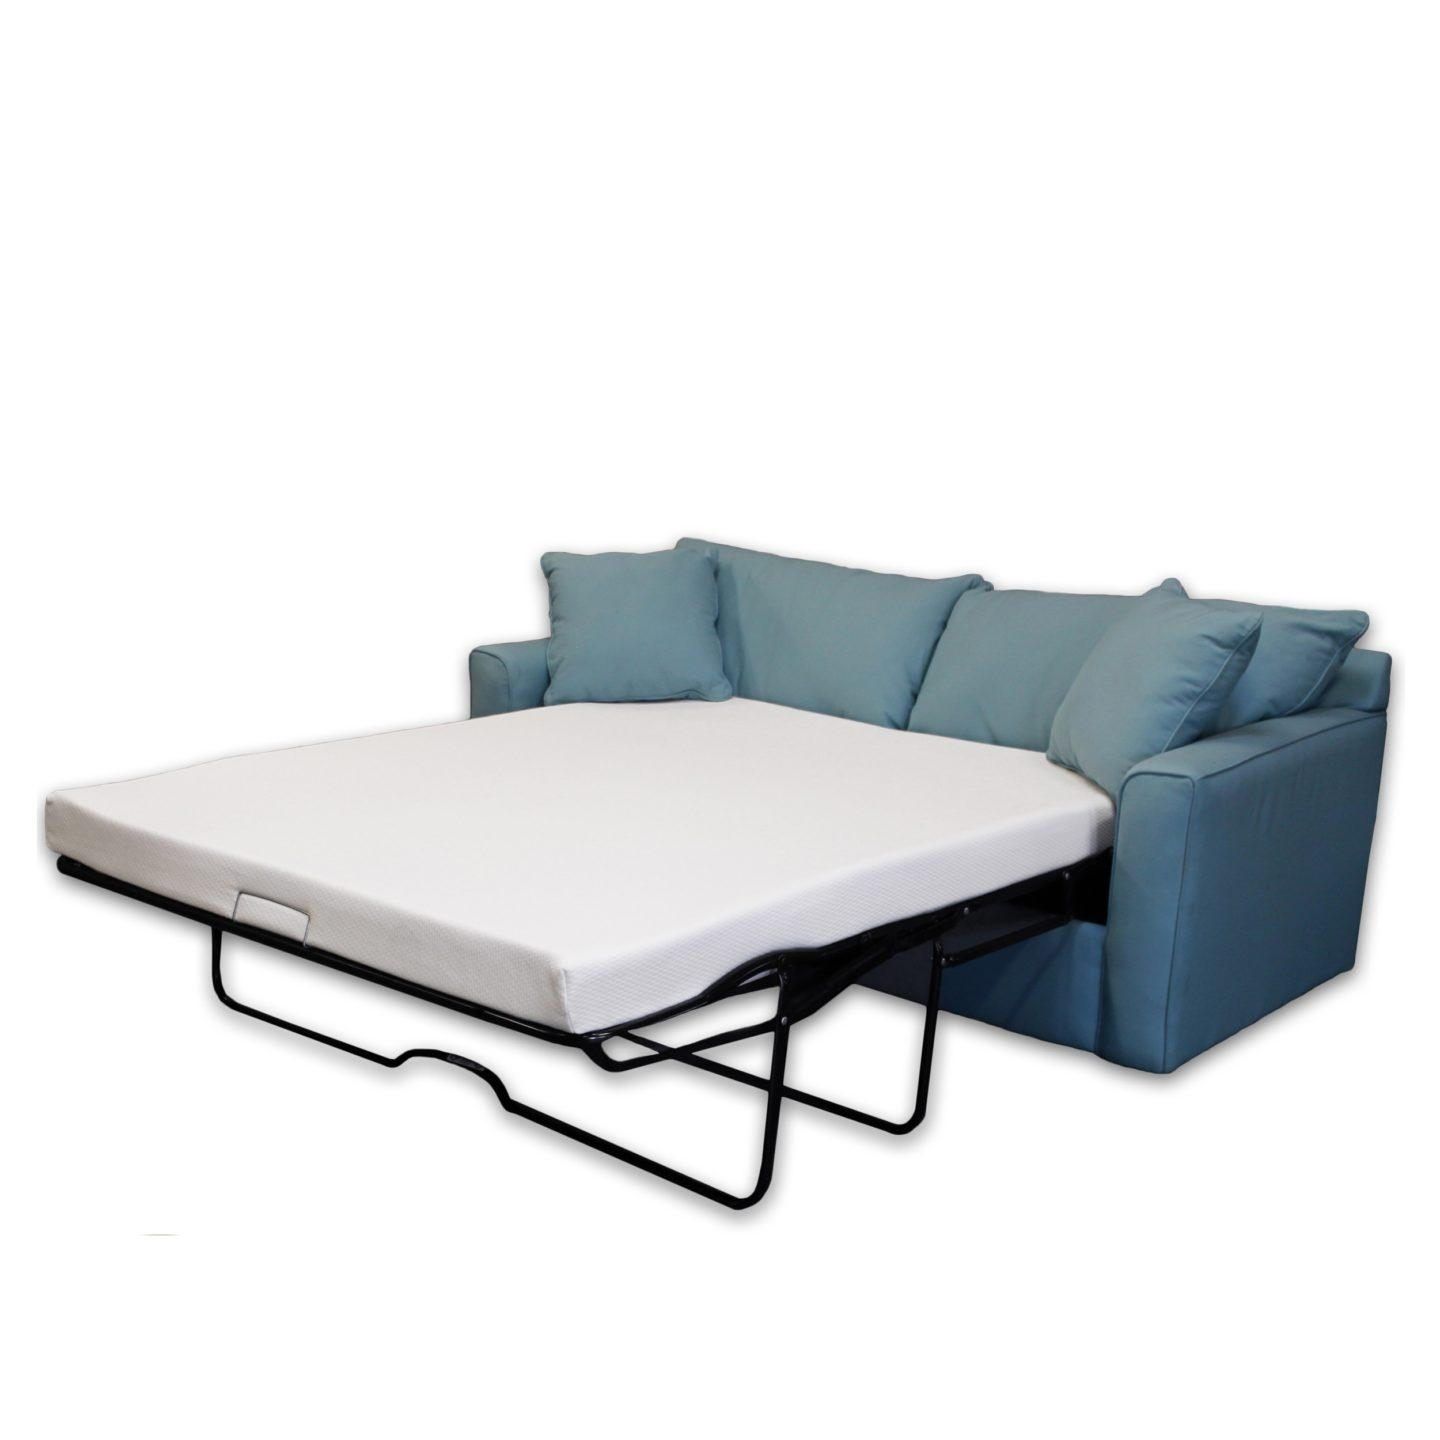 How To Make A Pull Out Sofa Bed More Comfortable – Overstock Throughout Sofa Beds With Mattress Support (Image 5 of 20)